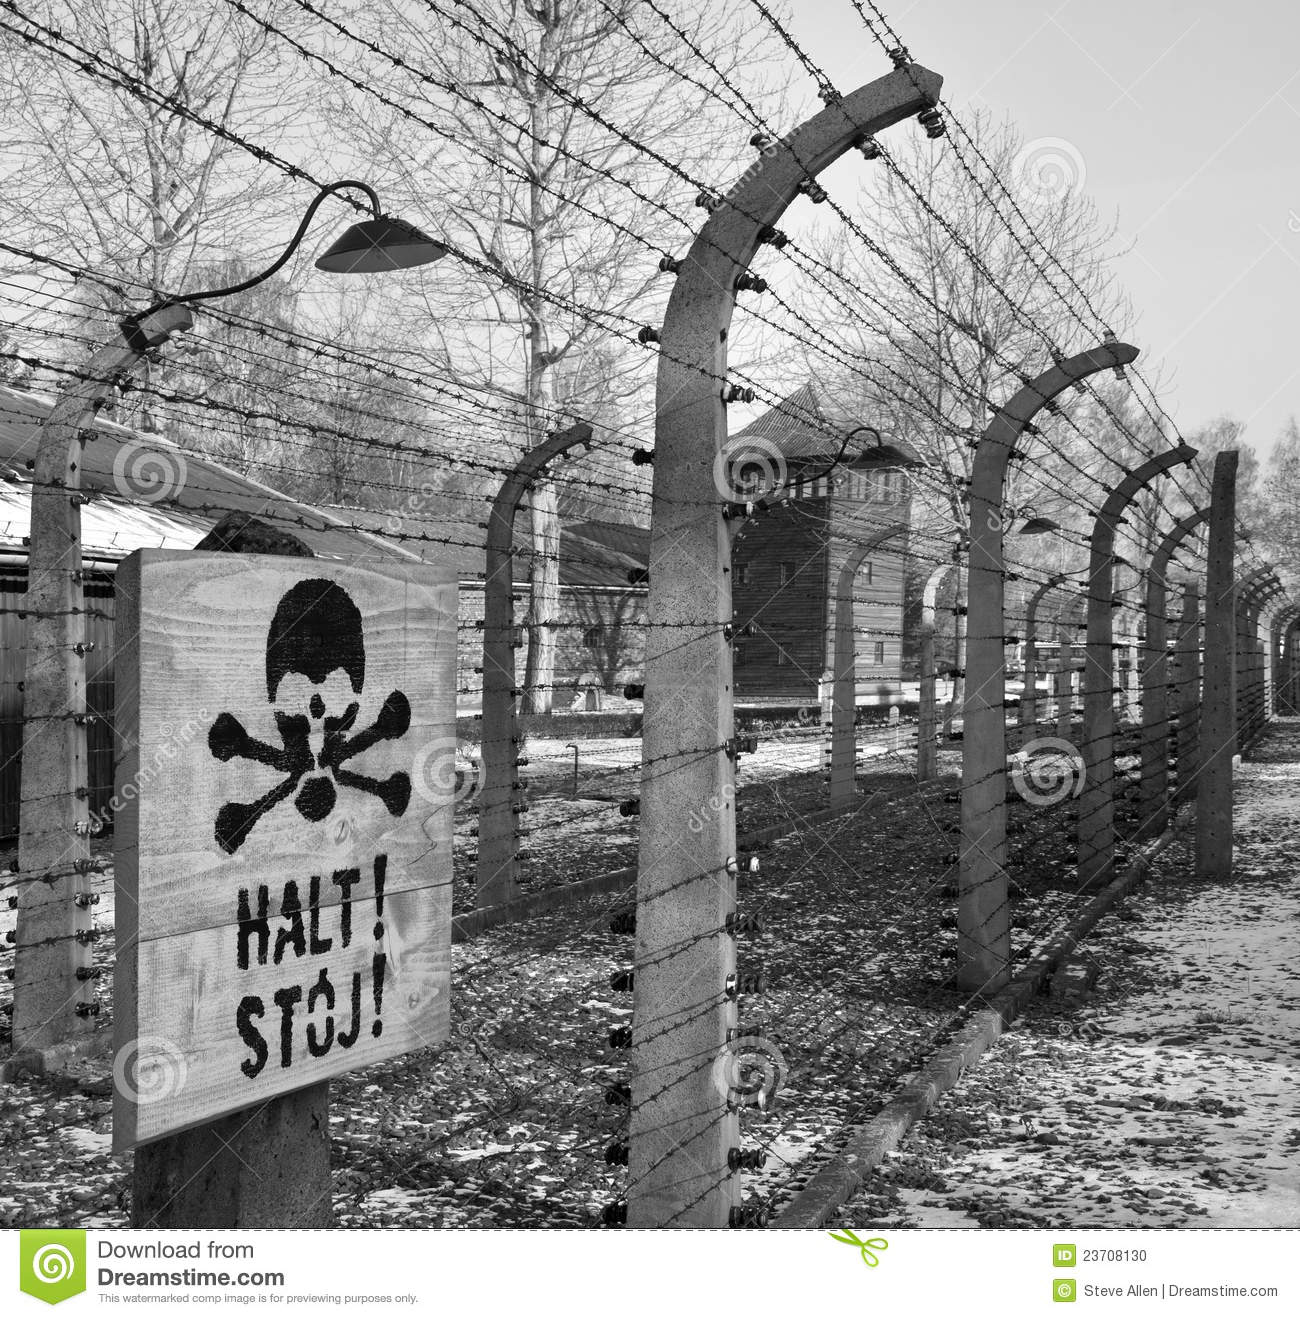 concentration camps in the holocaust These included extermination camps, labor camps, prisoner-of-war camps, and transit camps introduction to the holocaust the holocaust began in 1933 when adolf hitler came to power in germany and ended in 1945 when the nazis were defeated by the allied powers.